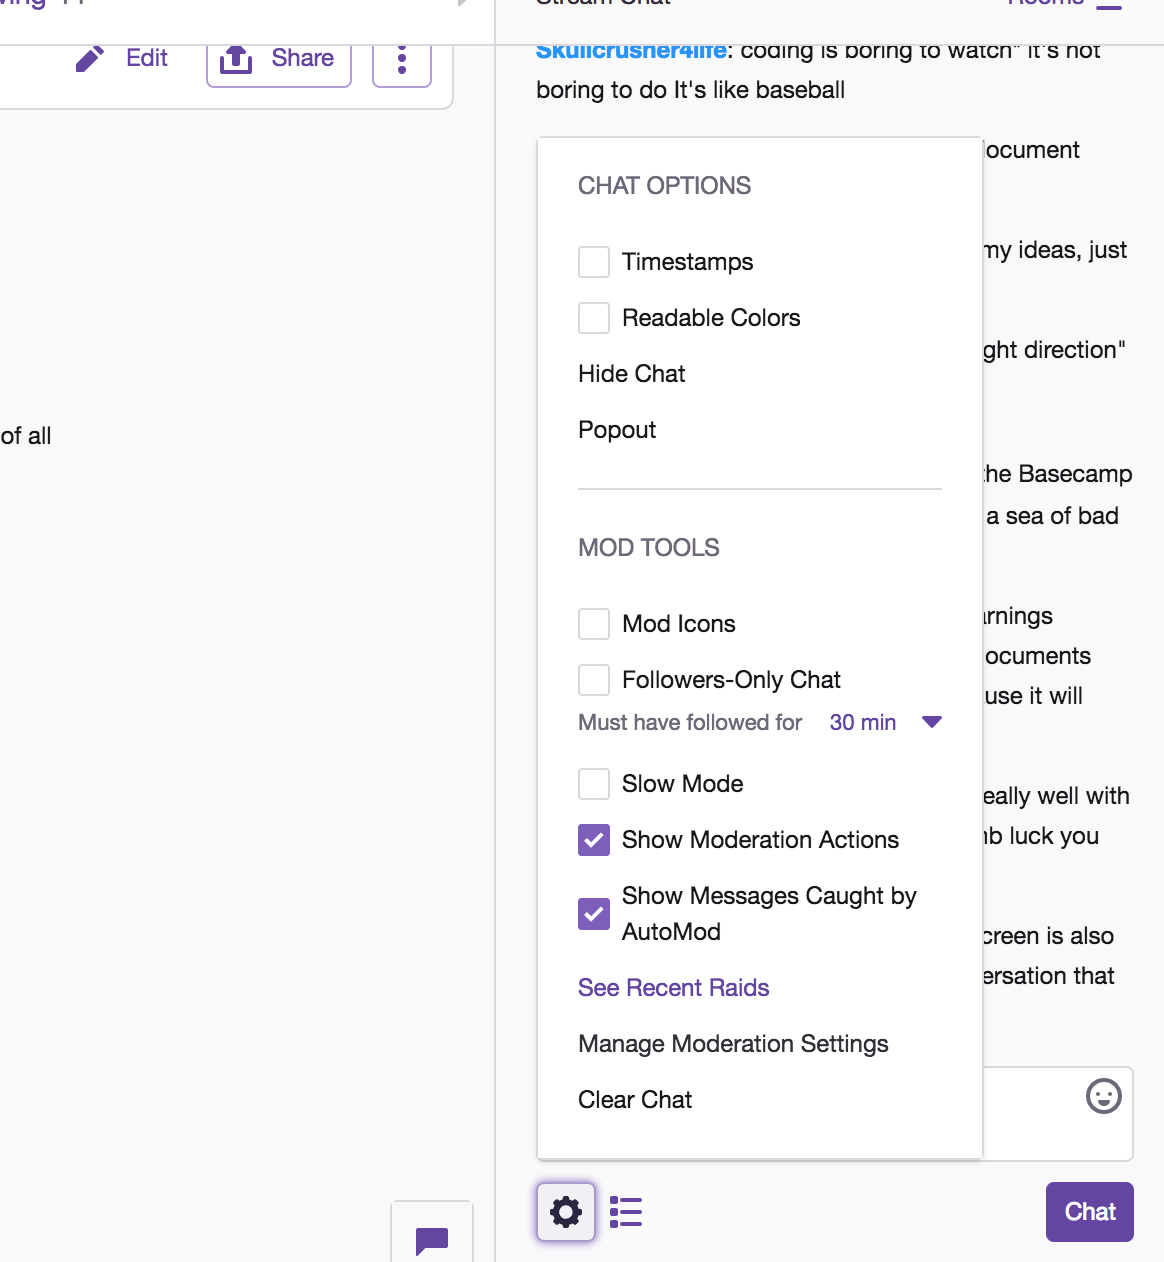 How to pop out the chat window on Twitch